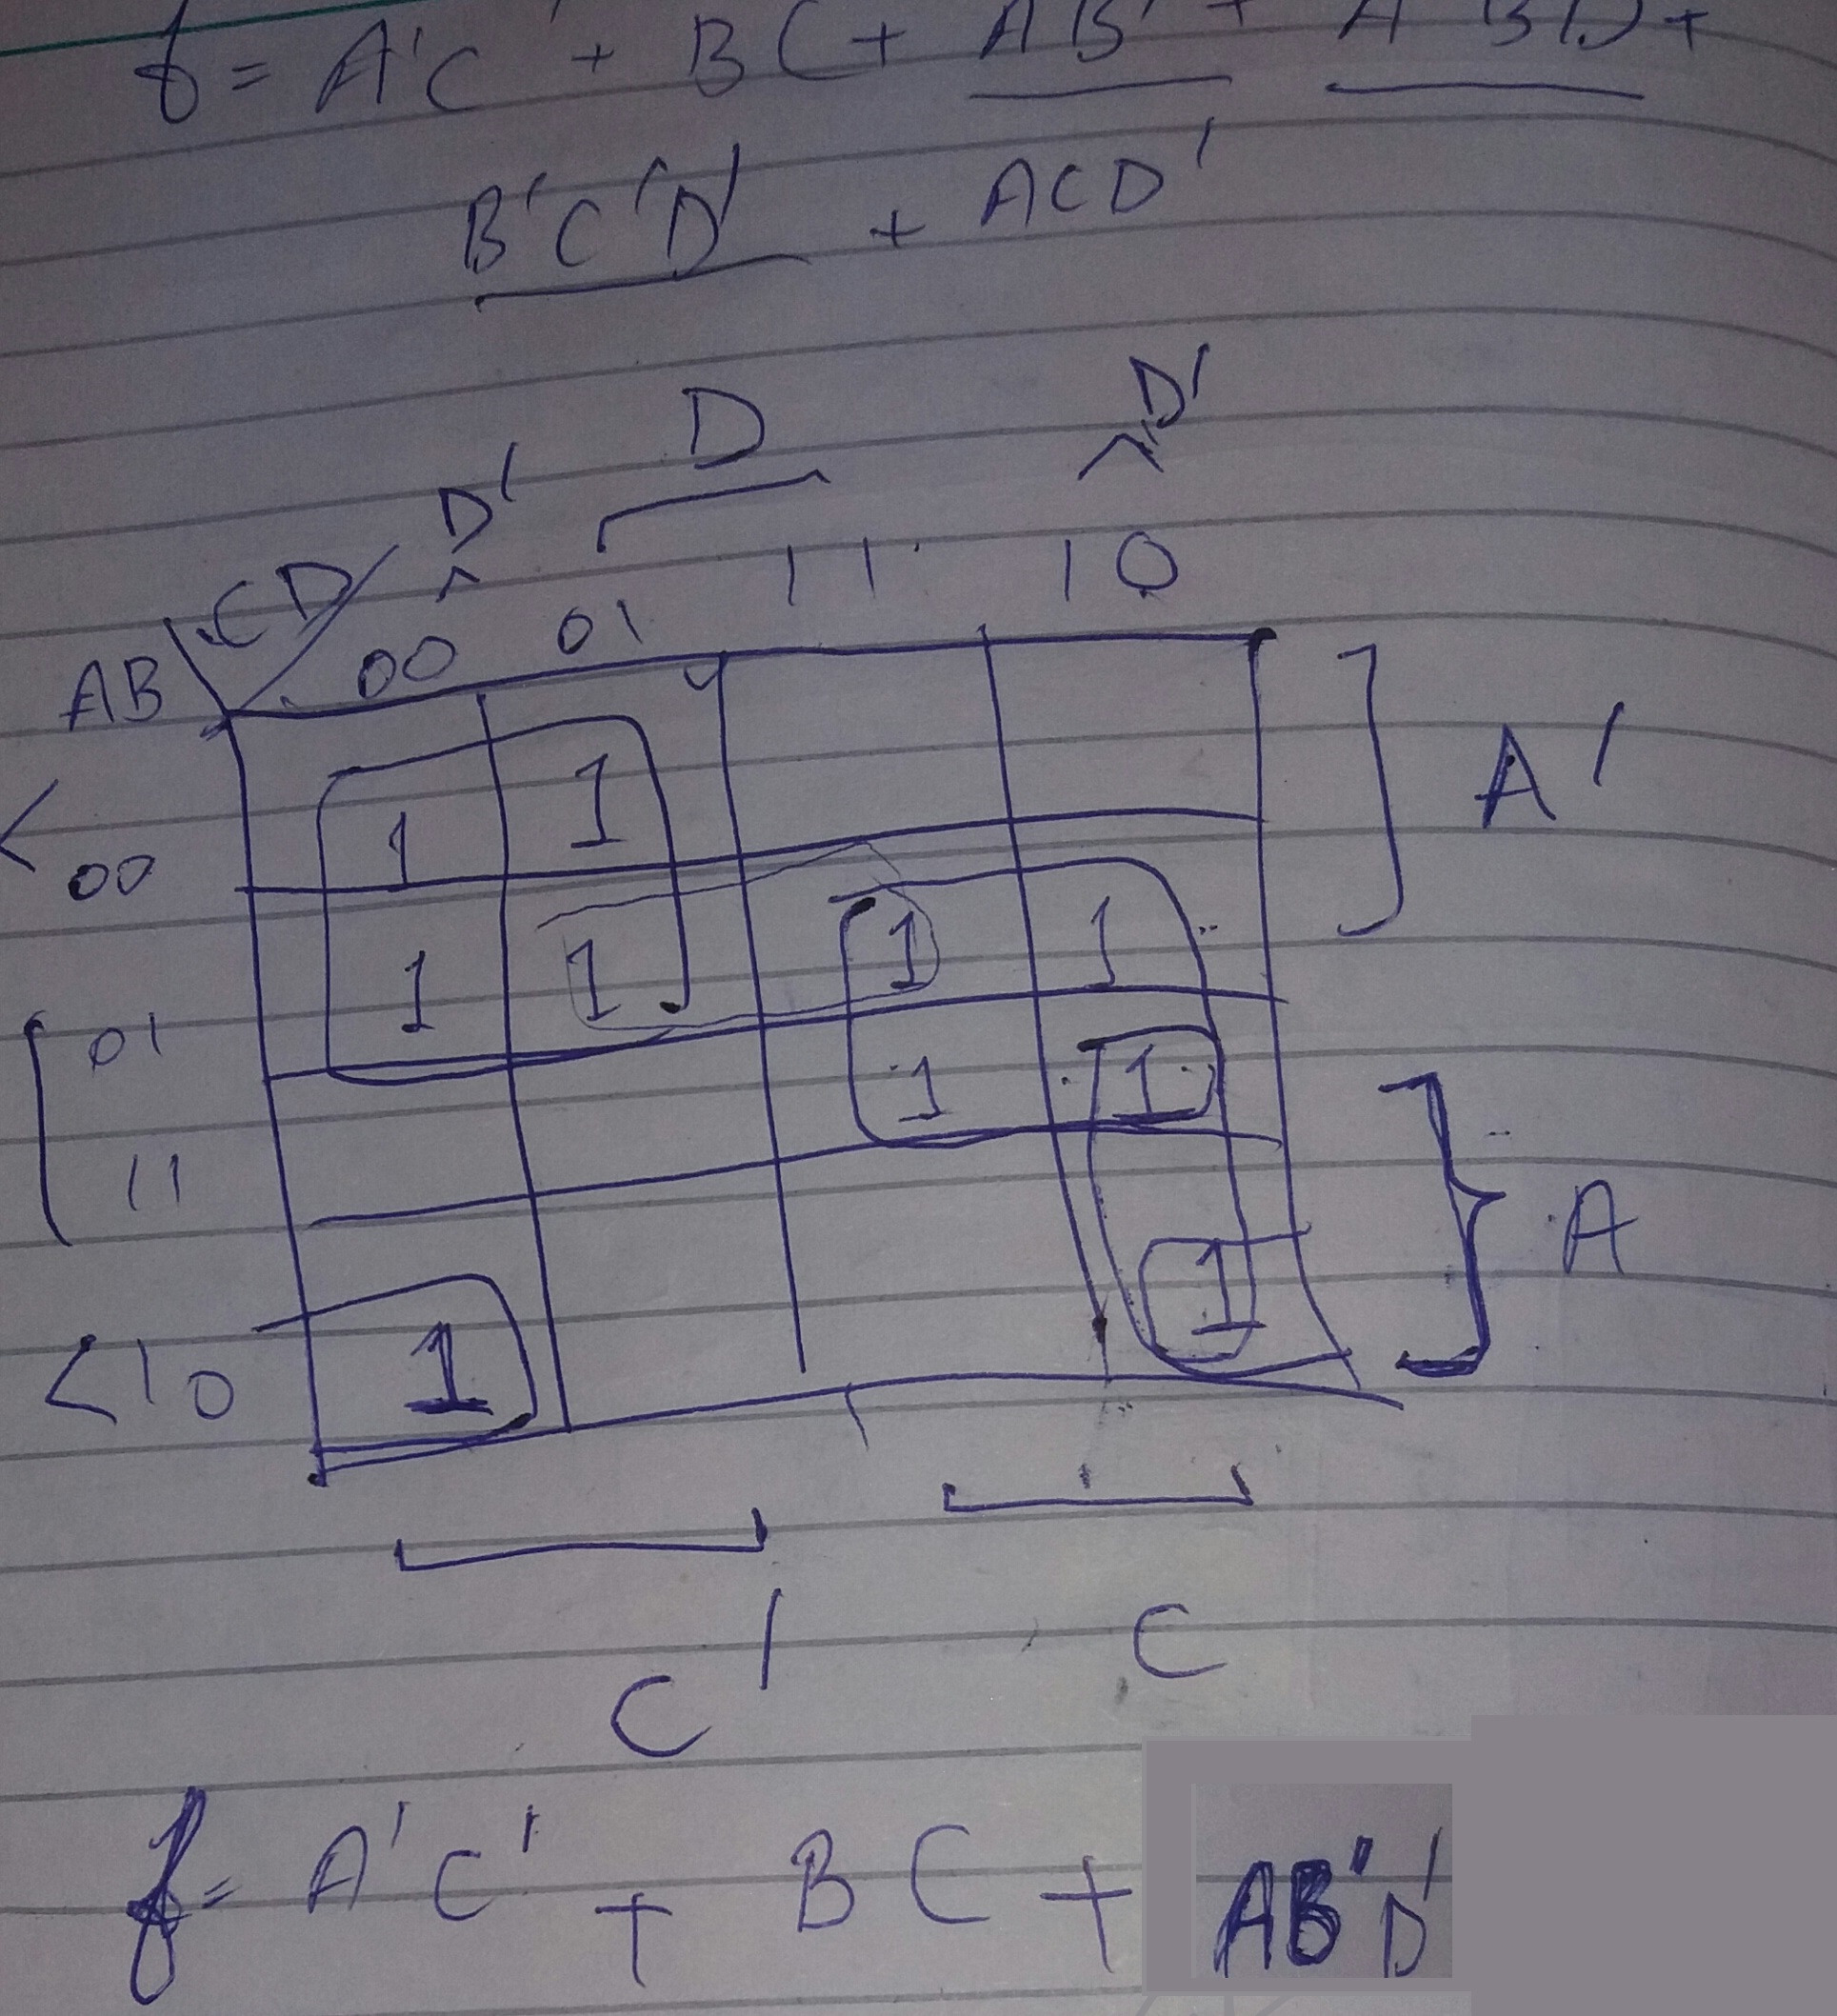 Am Trying To Create A Logic Circuit Using Only Nand Gates For This